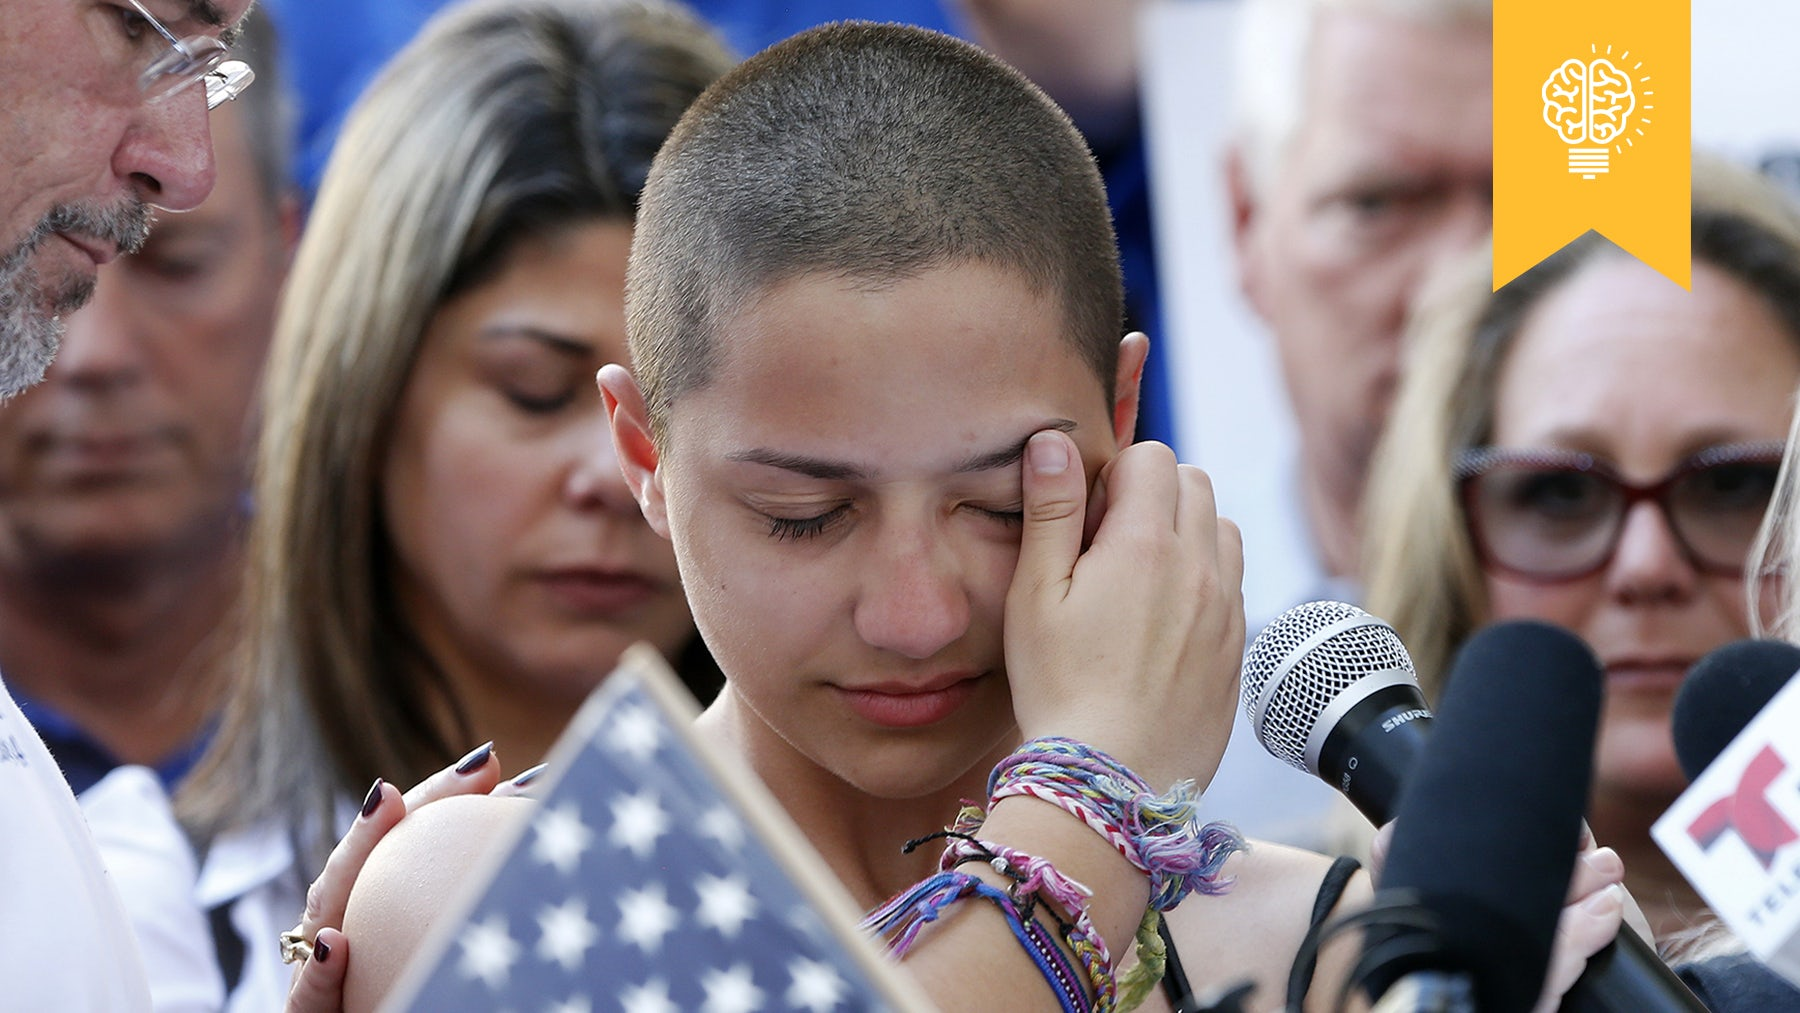 High school student Emma González speaks at a rally for gun control in Florida | Source: Getty